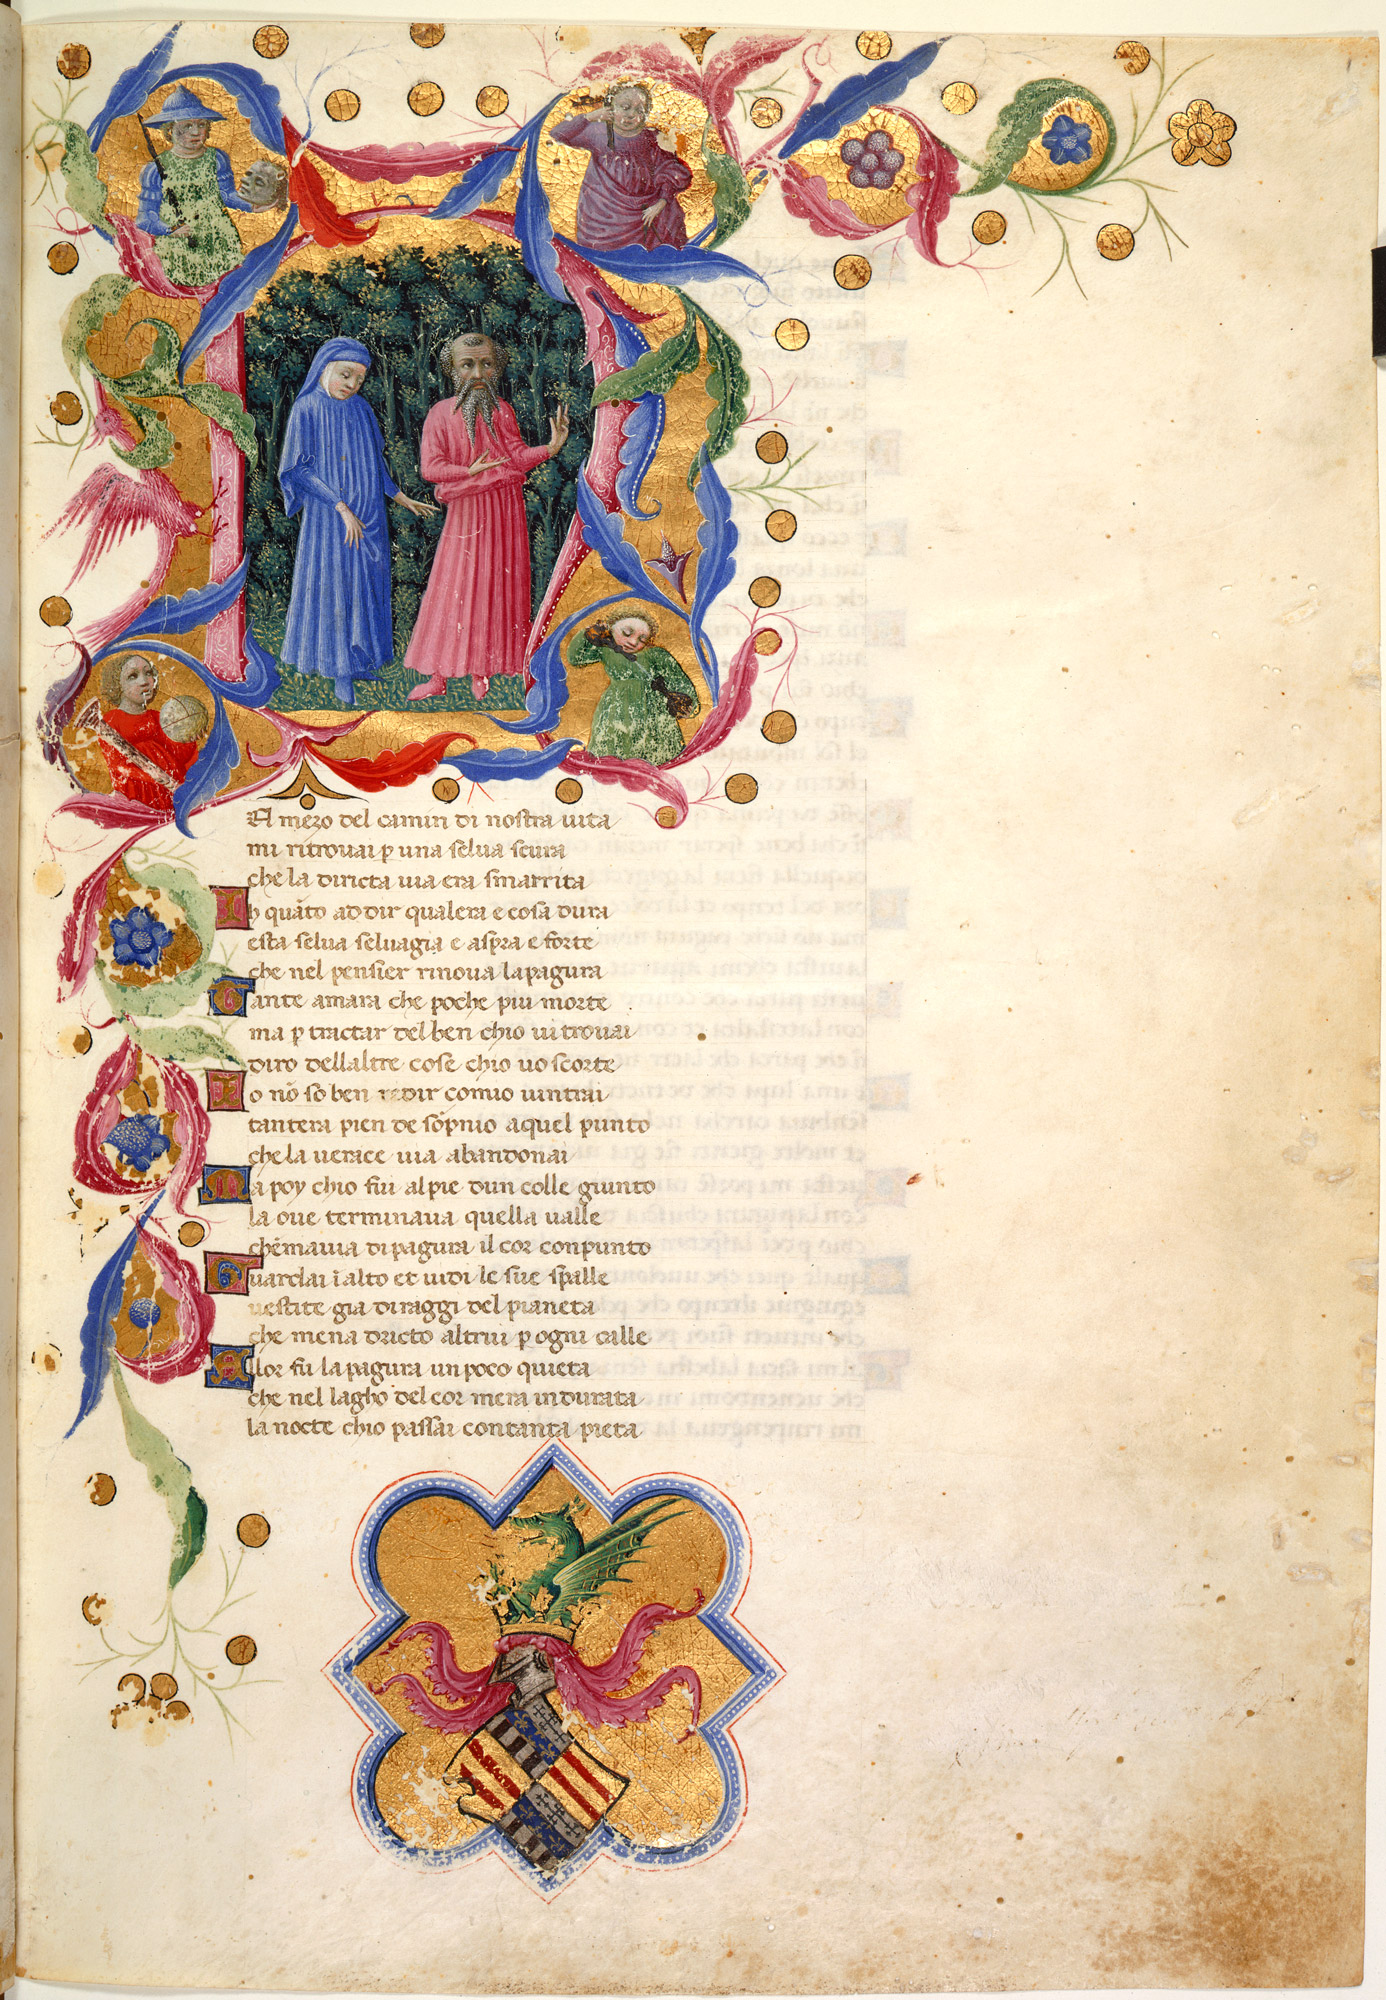 Illustration of Dante and Virgil in Dante's Divine Comedy